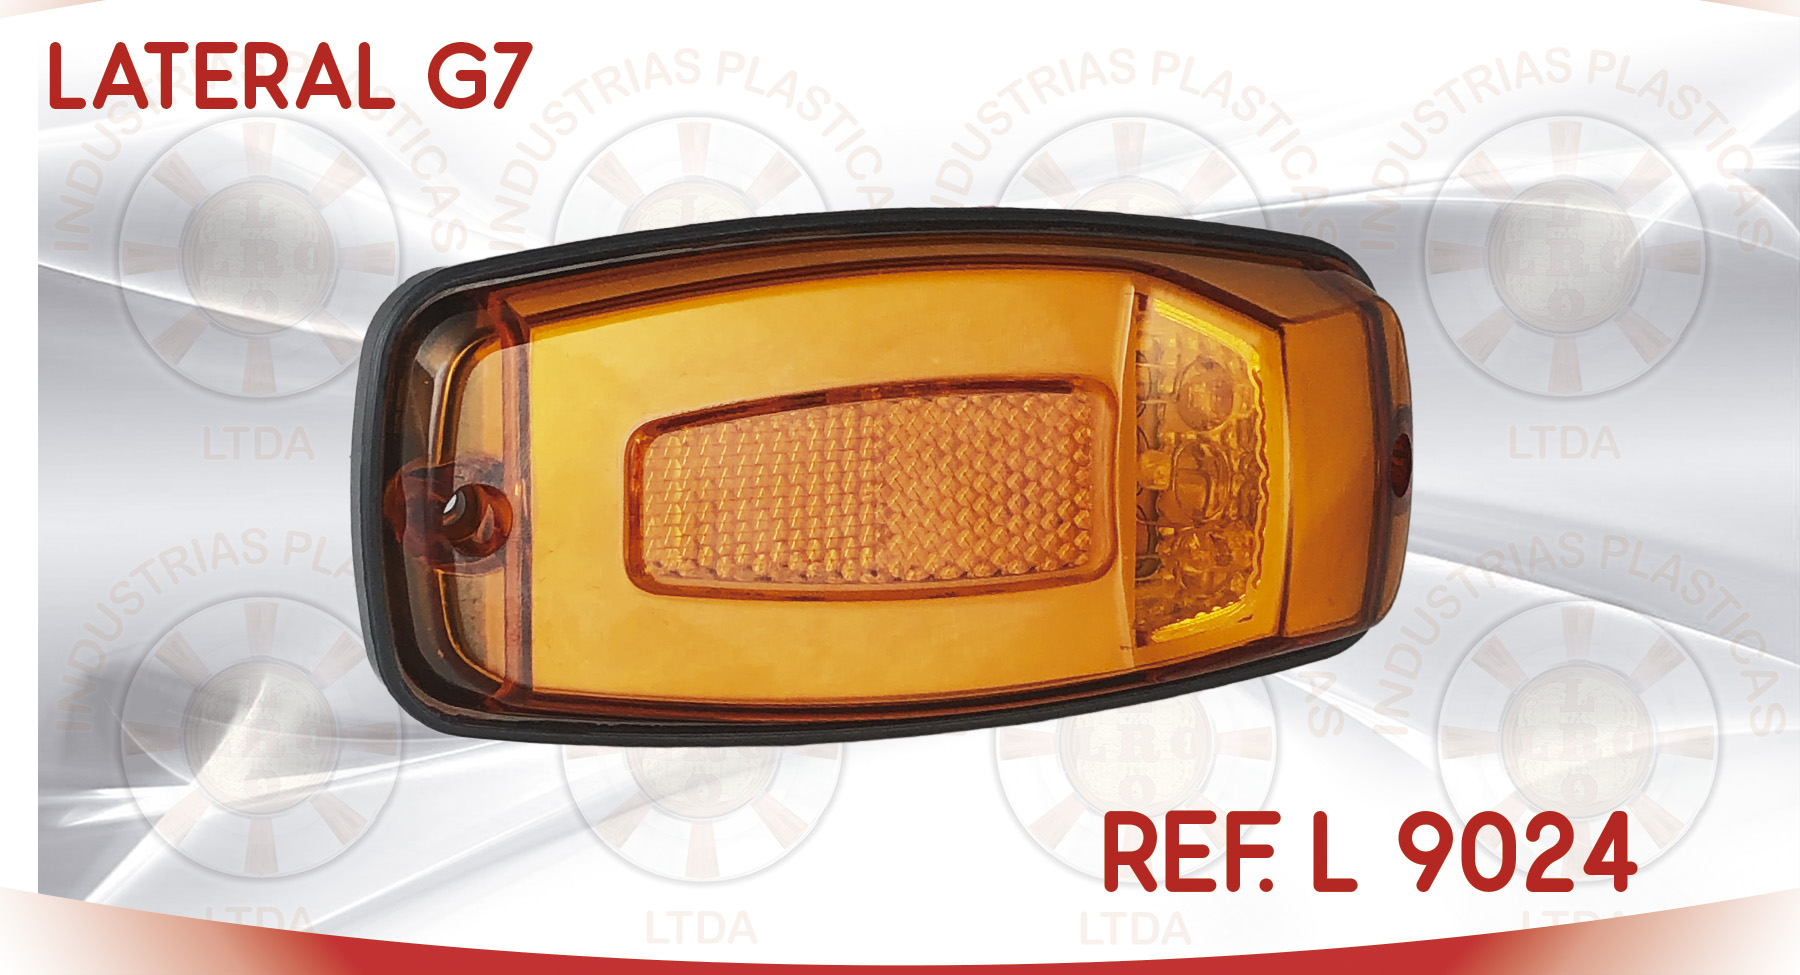 L 9024 LATERAL G7